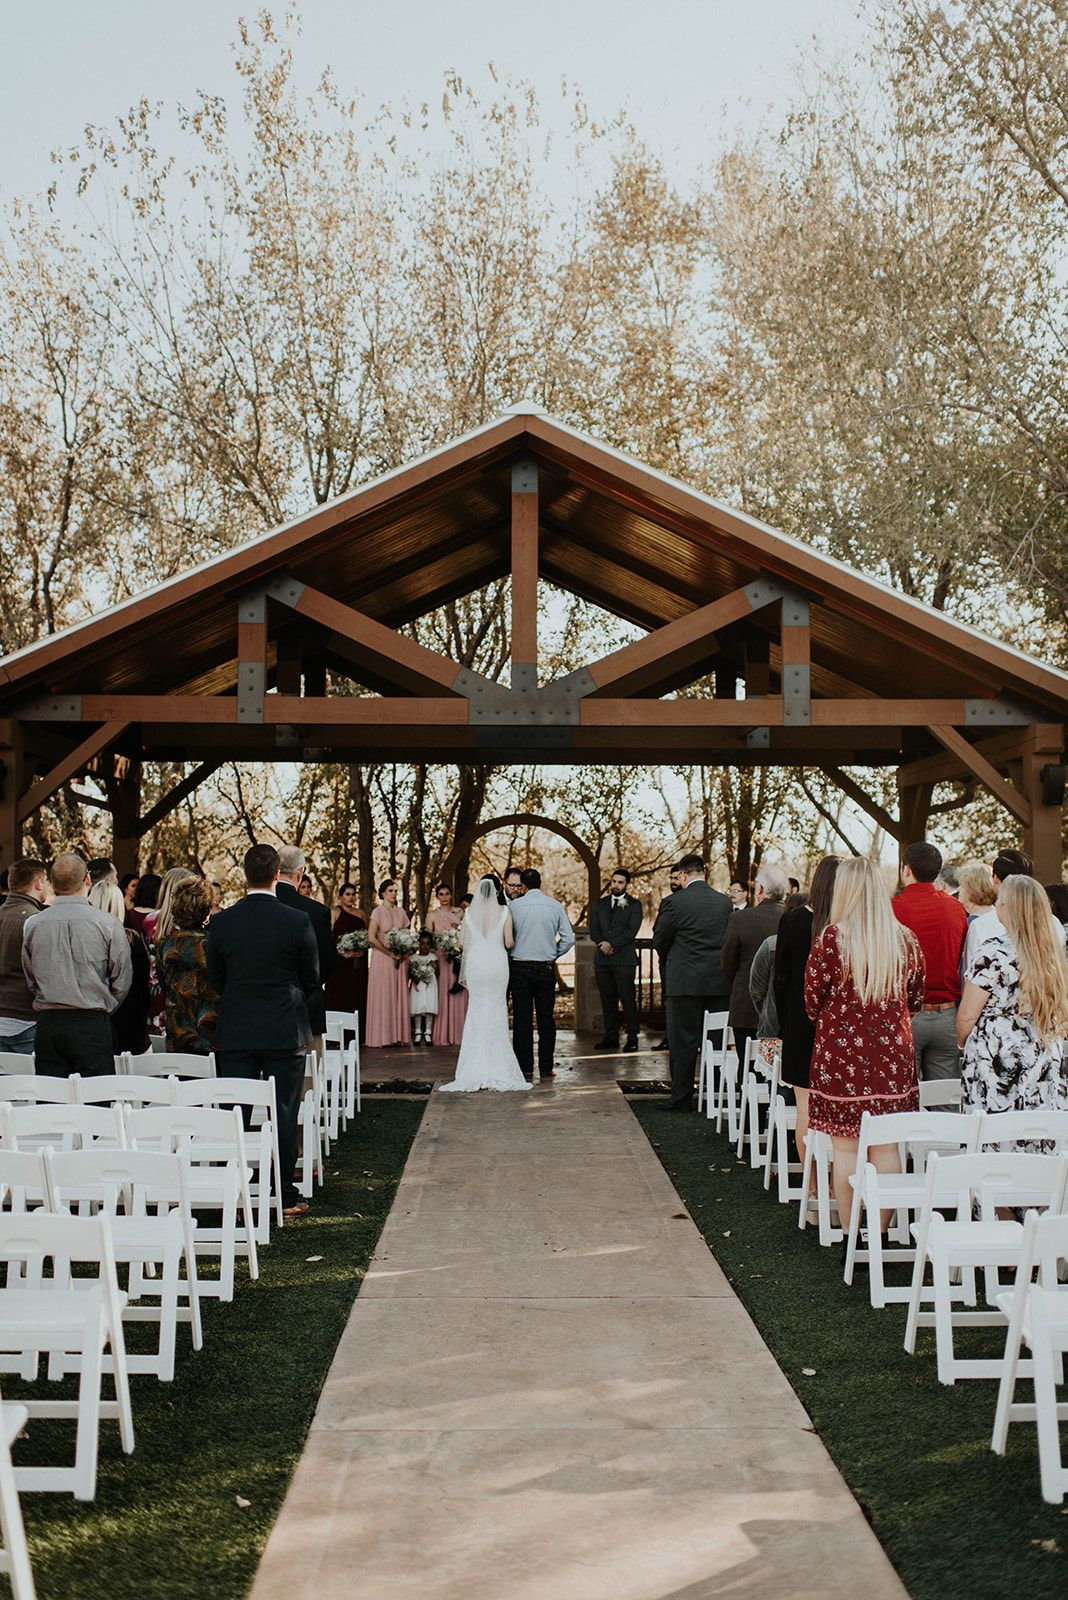 Outdoor Oklahoma Wedding Venue Outdoor Oklahoma City Wedding Venue Outdoor Okc Wedding Venu Oklahoma Wedding Venues Wedding Venues Outdoor Wedding Venues